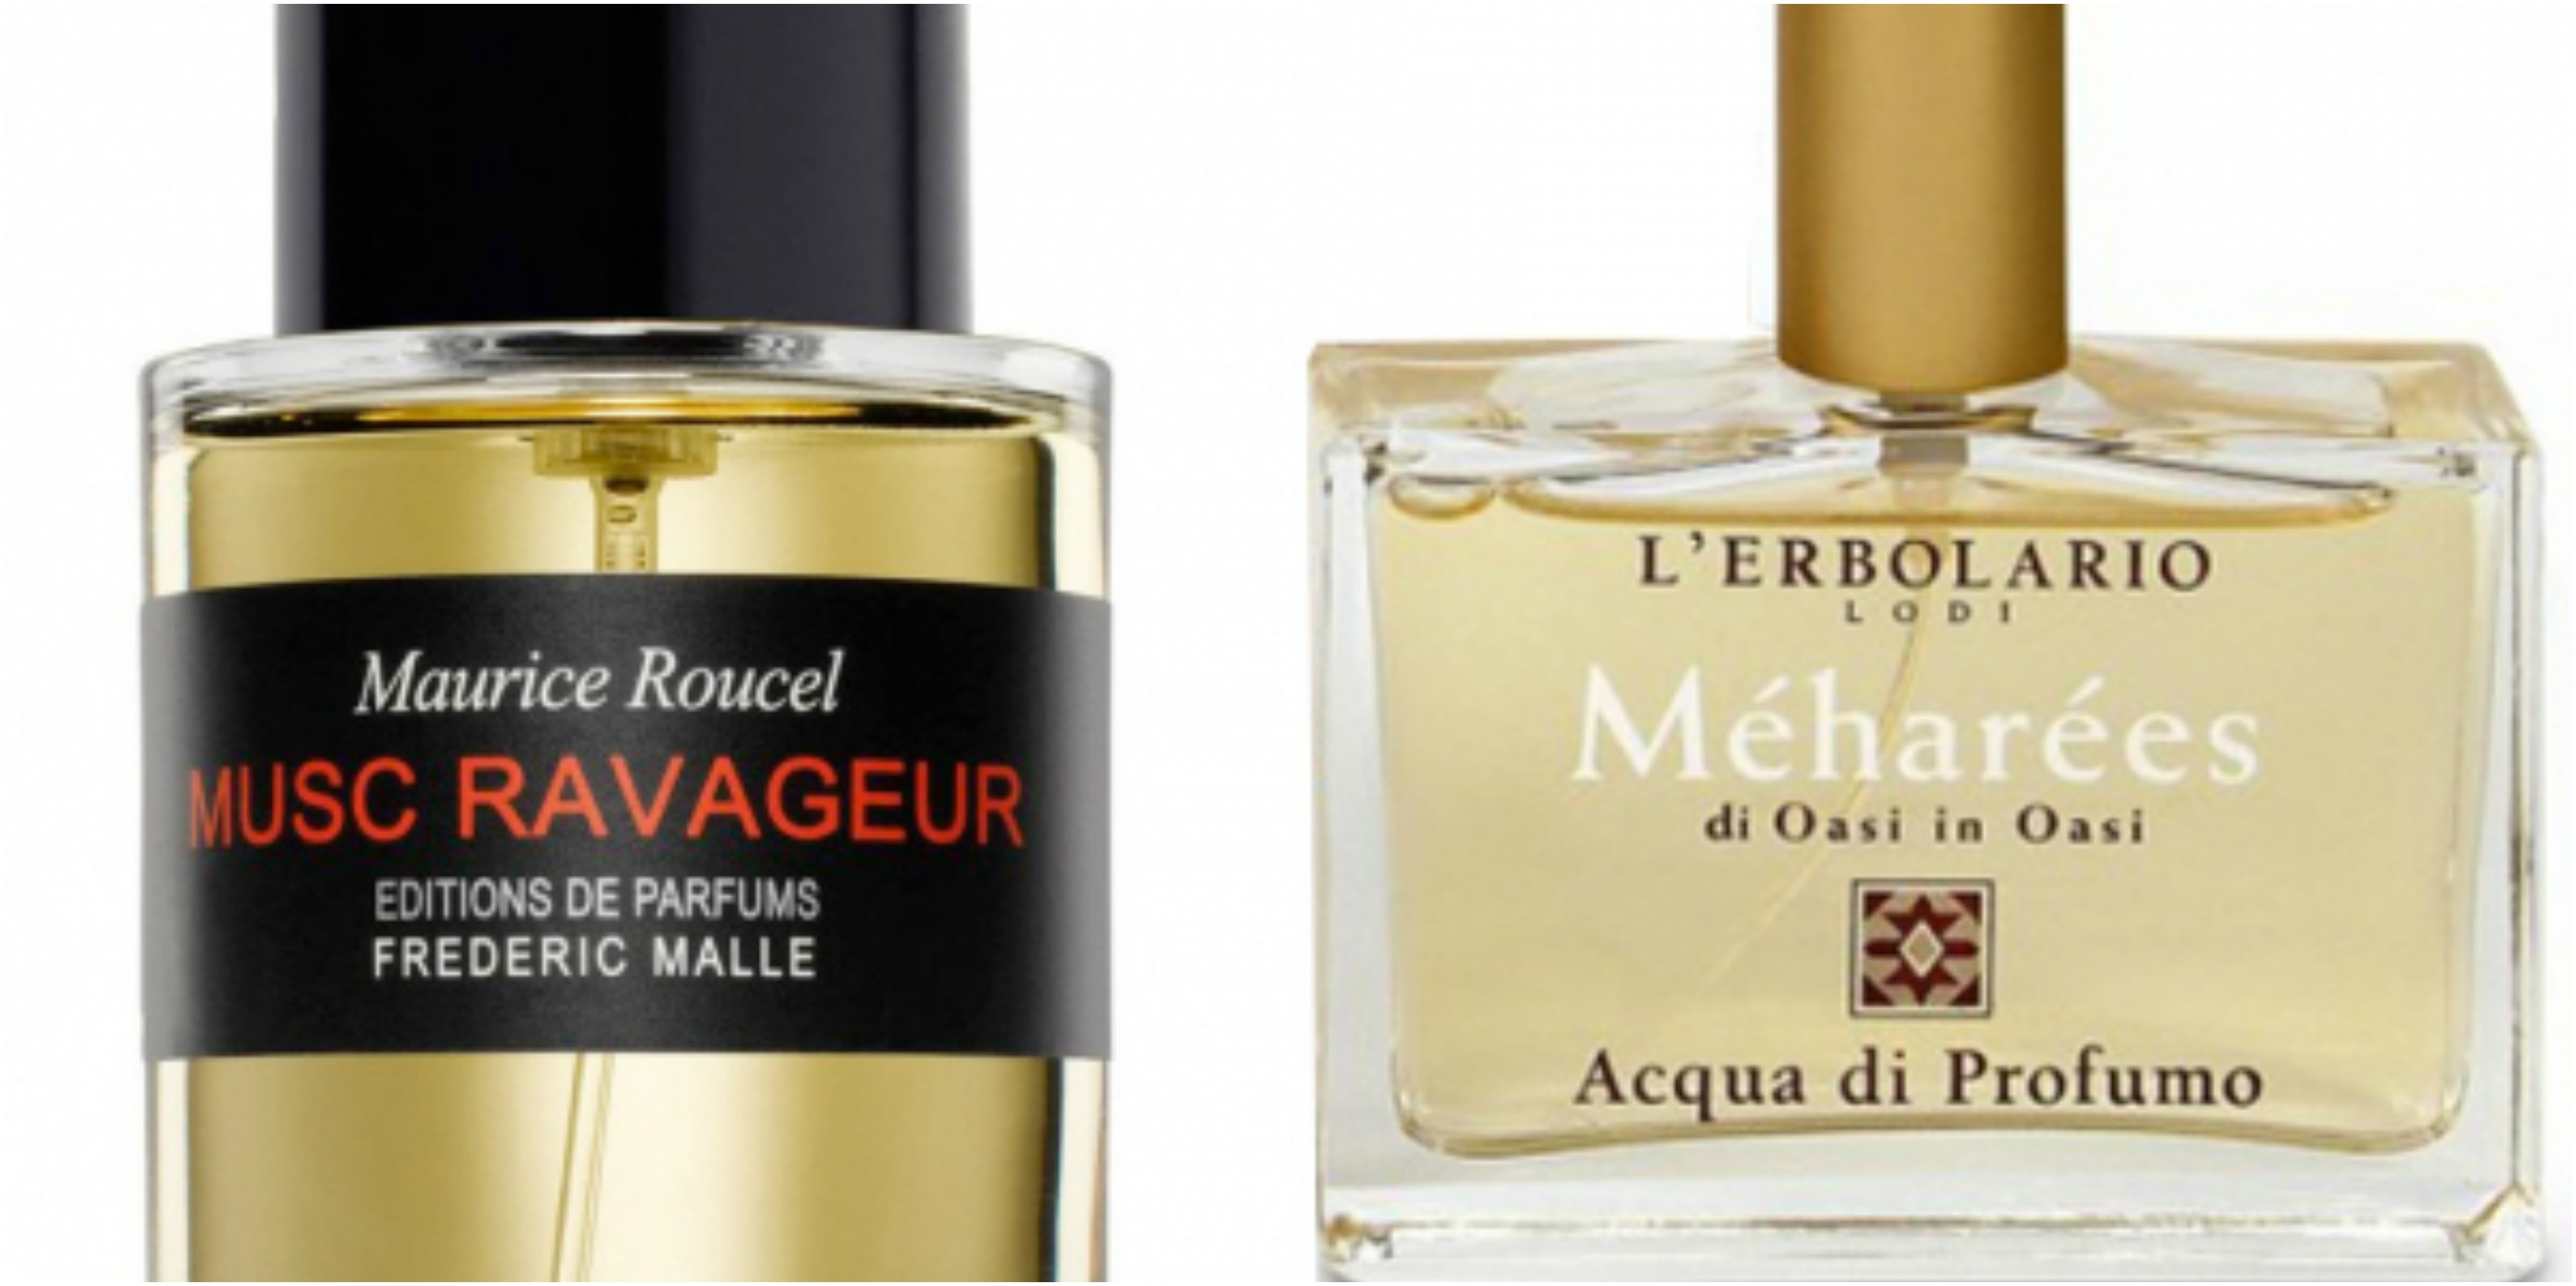 0aabc16a2 Flacons of Frederic Malle Musc Ravageur and L'Erbolario Meharees